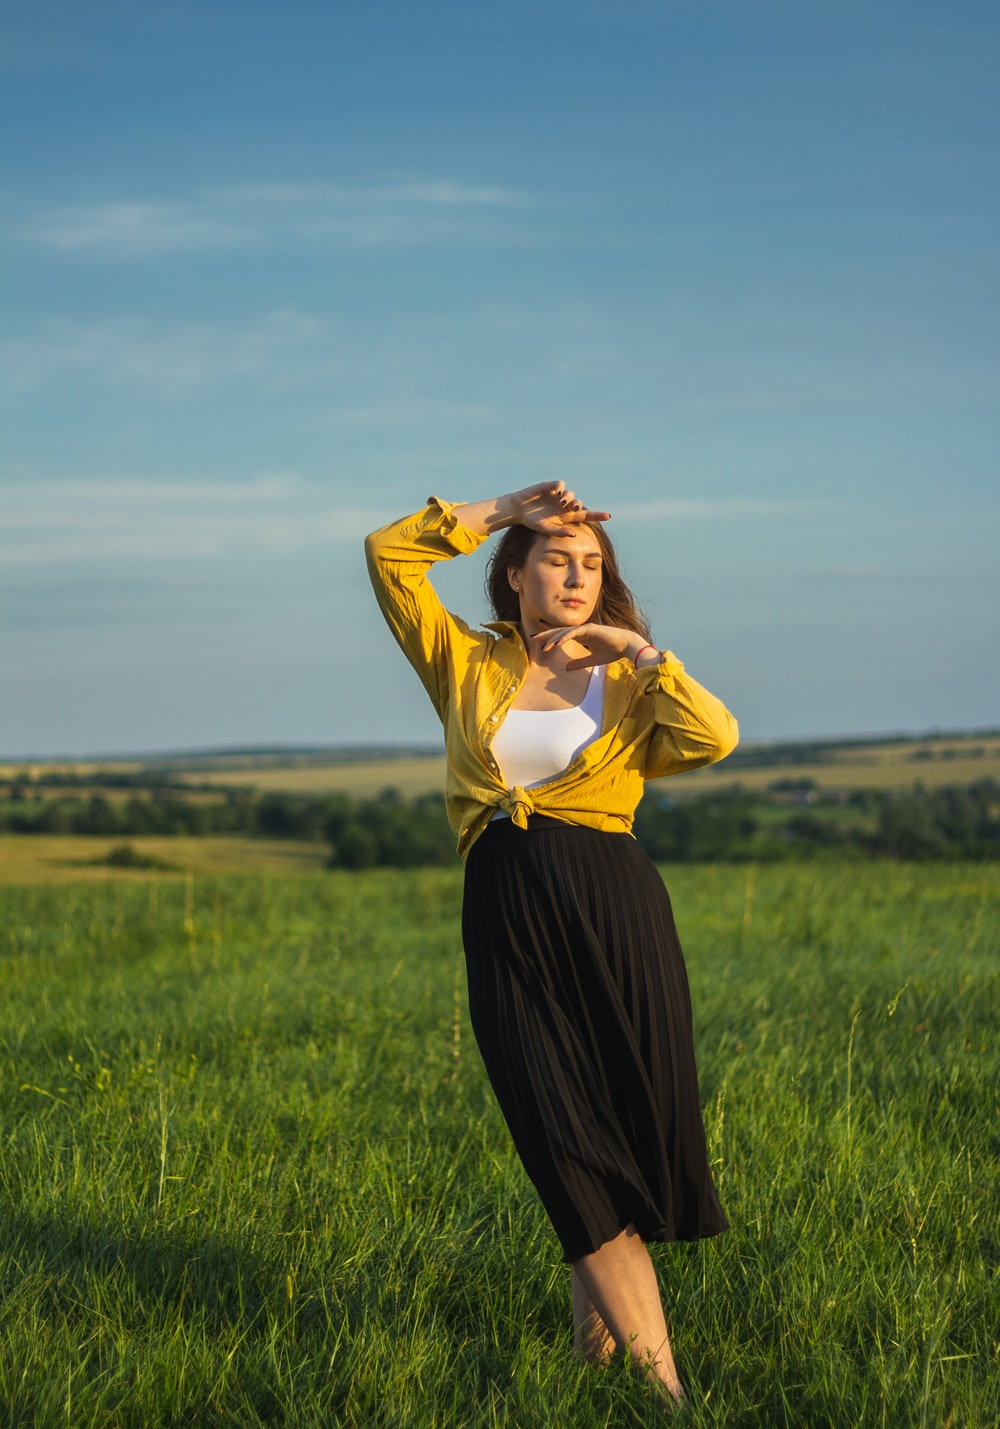 woman in yellow long sleeve shirt and black skirt standing on green grass field under blue